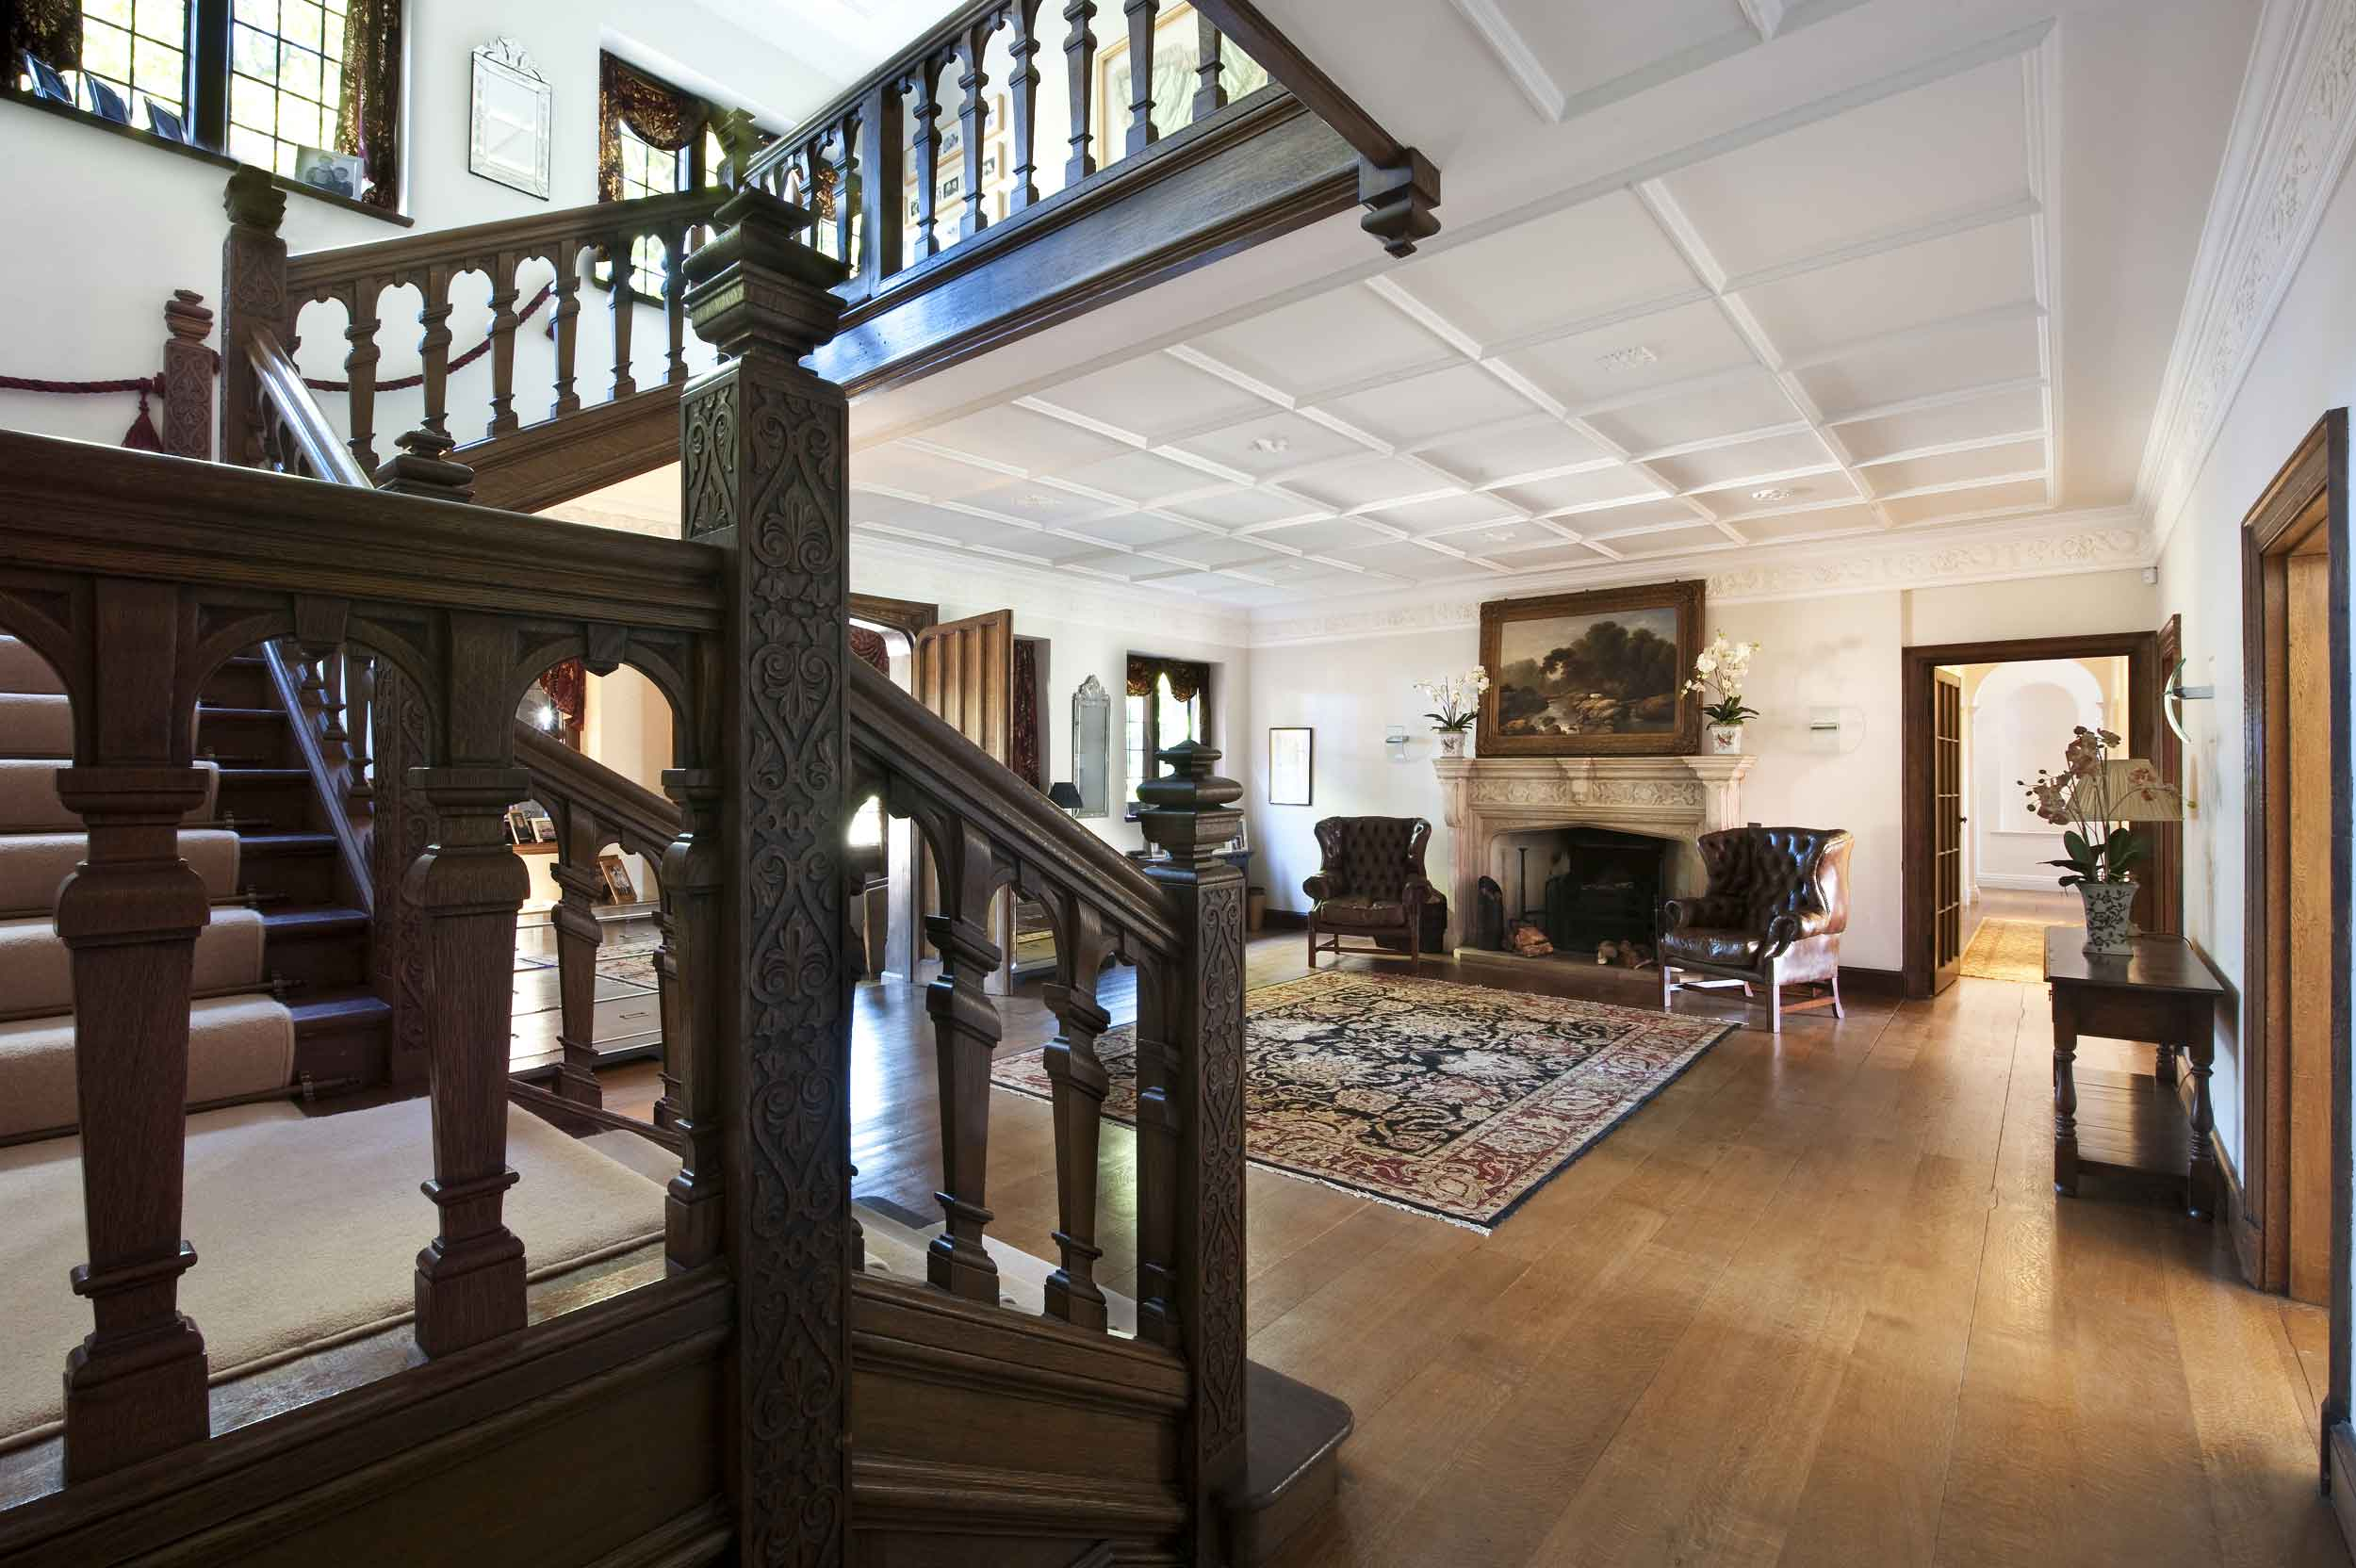 Lock House is a beautiful example of the Vernacular Revival style. The Jacobean-style staircase, which dominates the grand foyer, is among the original turn-of-the-century details.